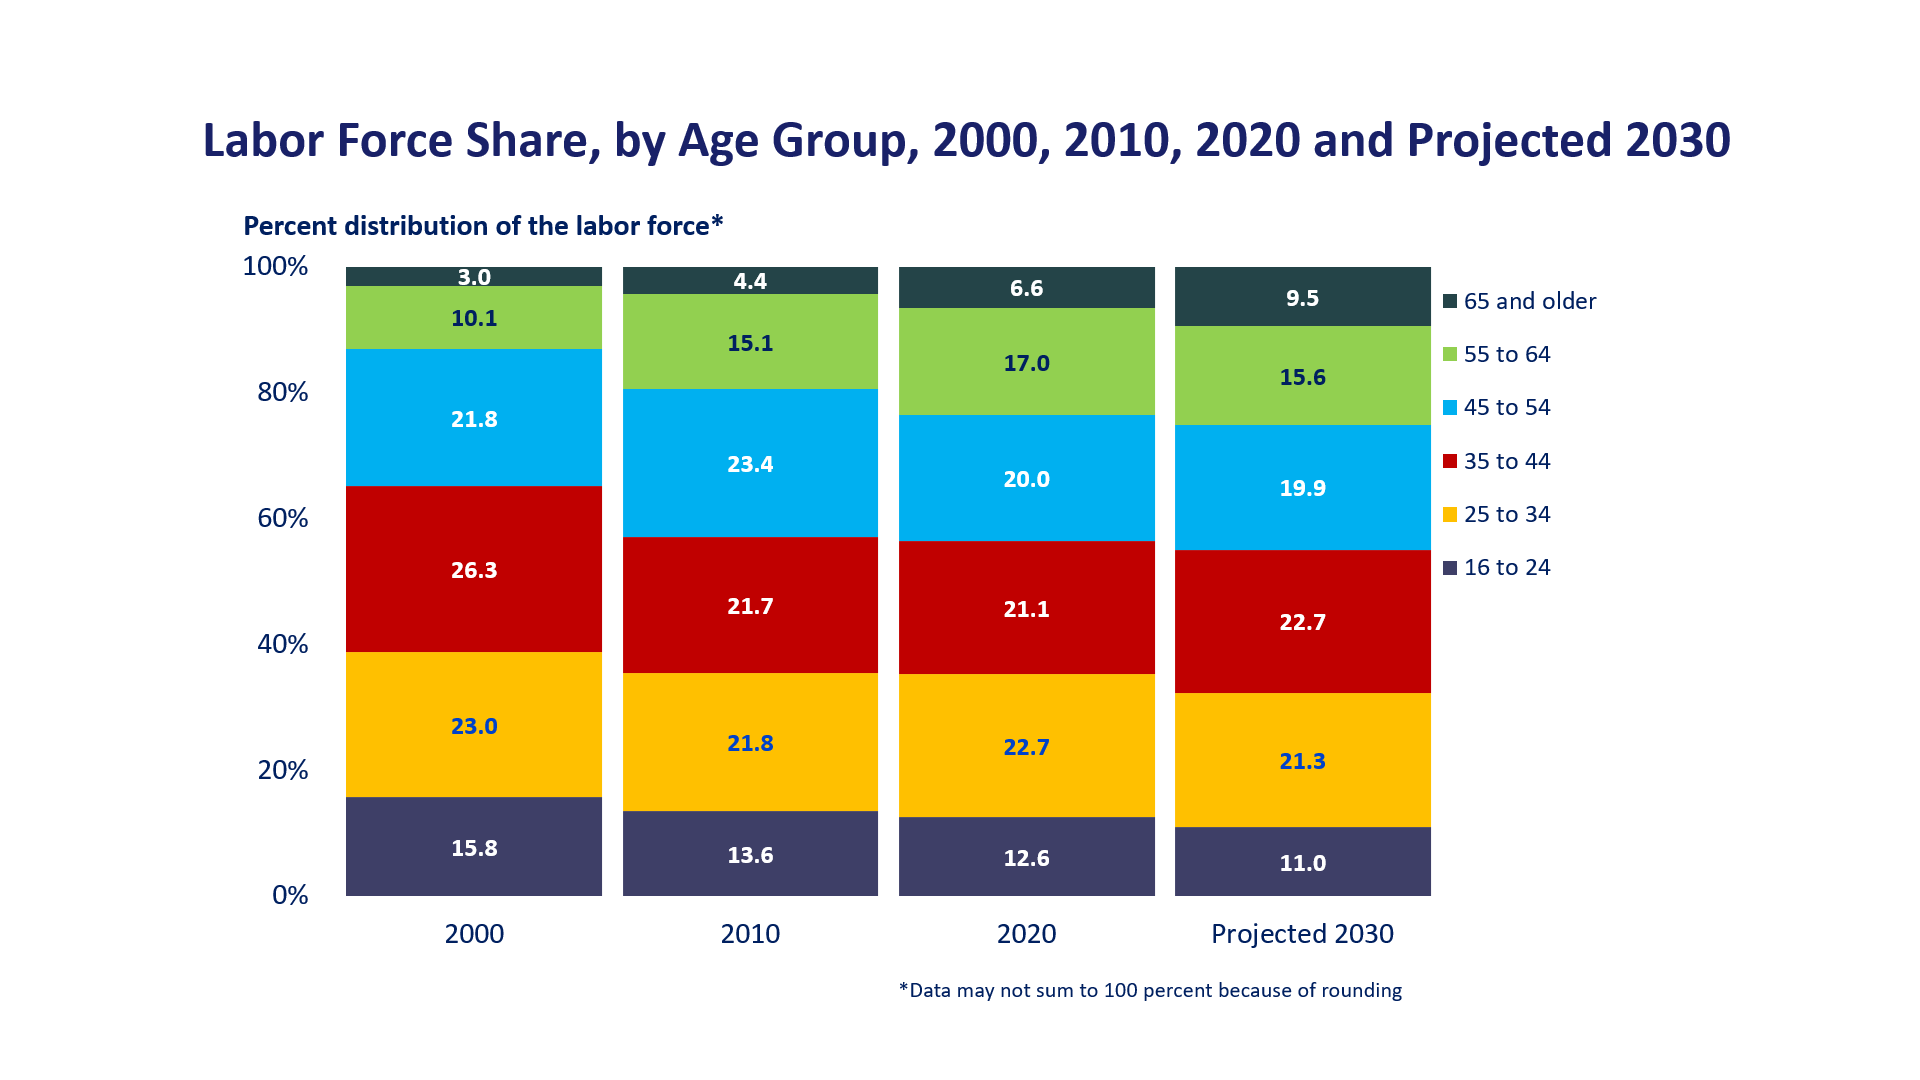 Labor Force Share, by Age Group, 1998, 2008, 2018, and Projected 2028